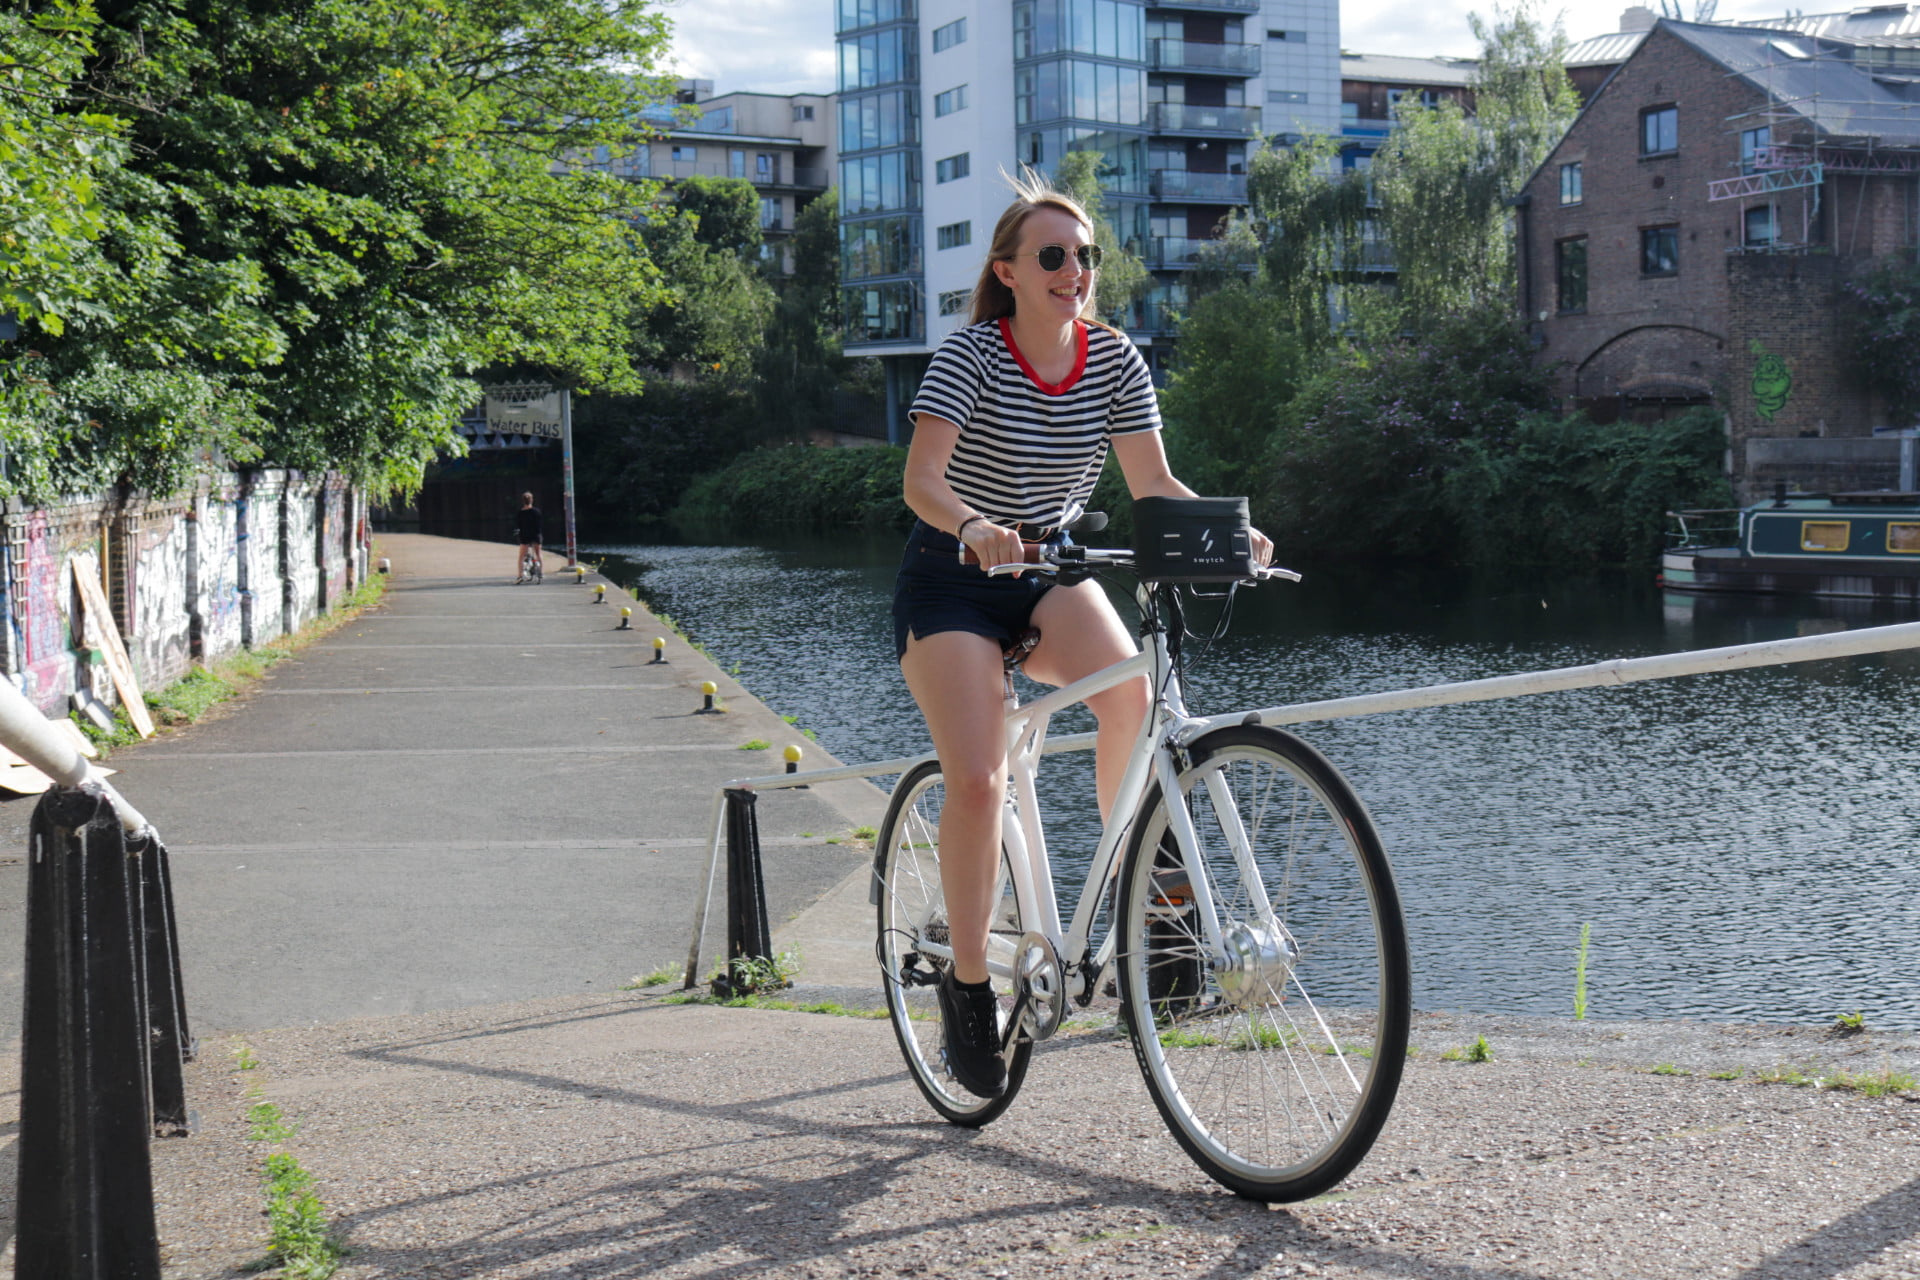 compact swytch kit converts any bike to an e for sustainable transport 1